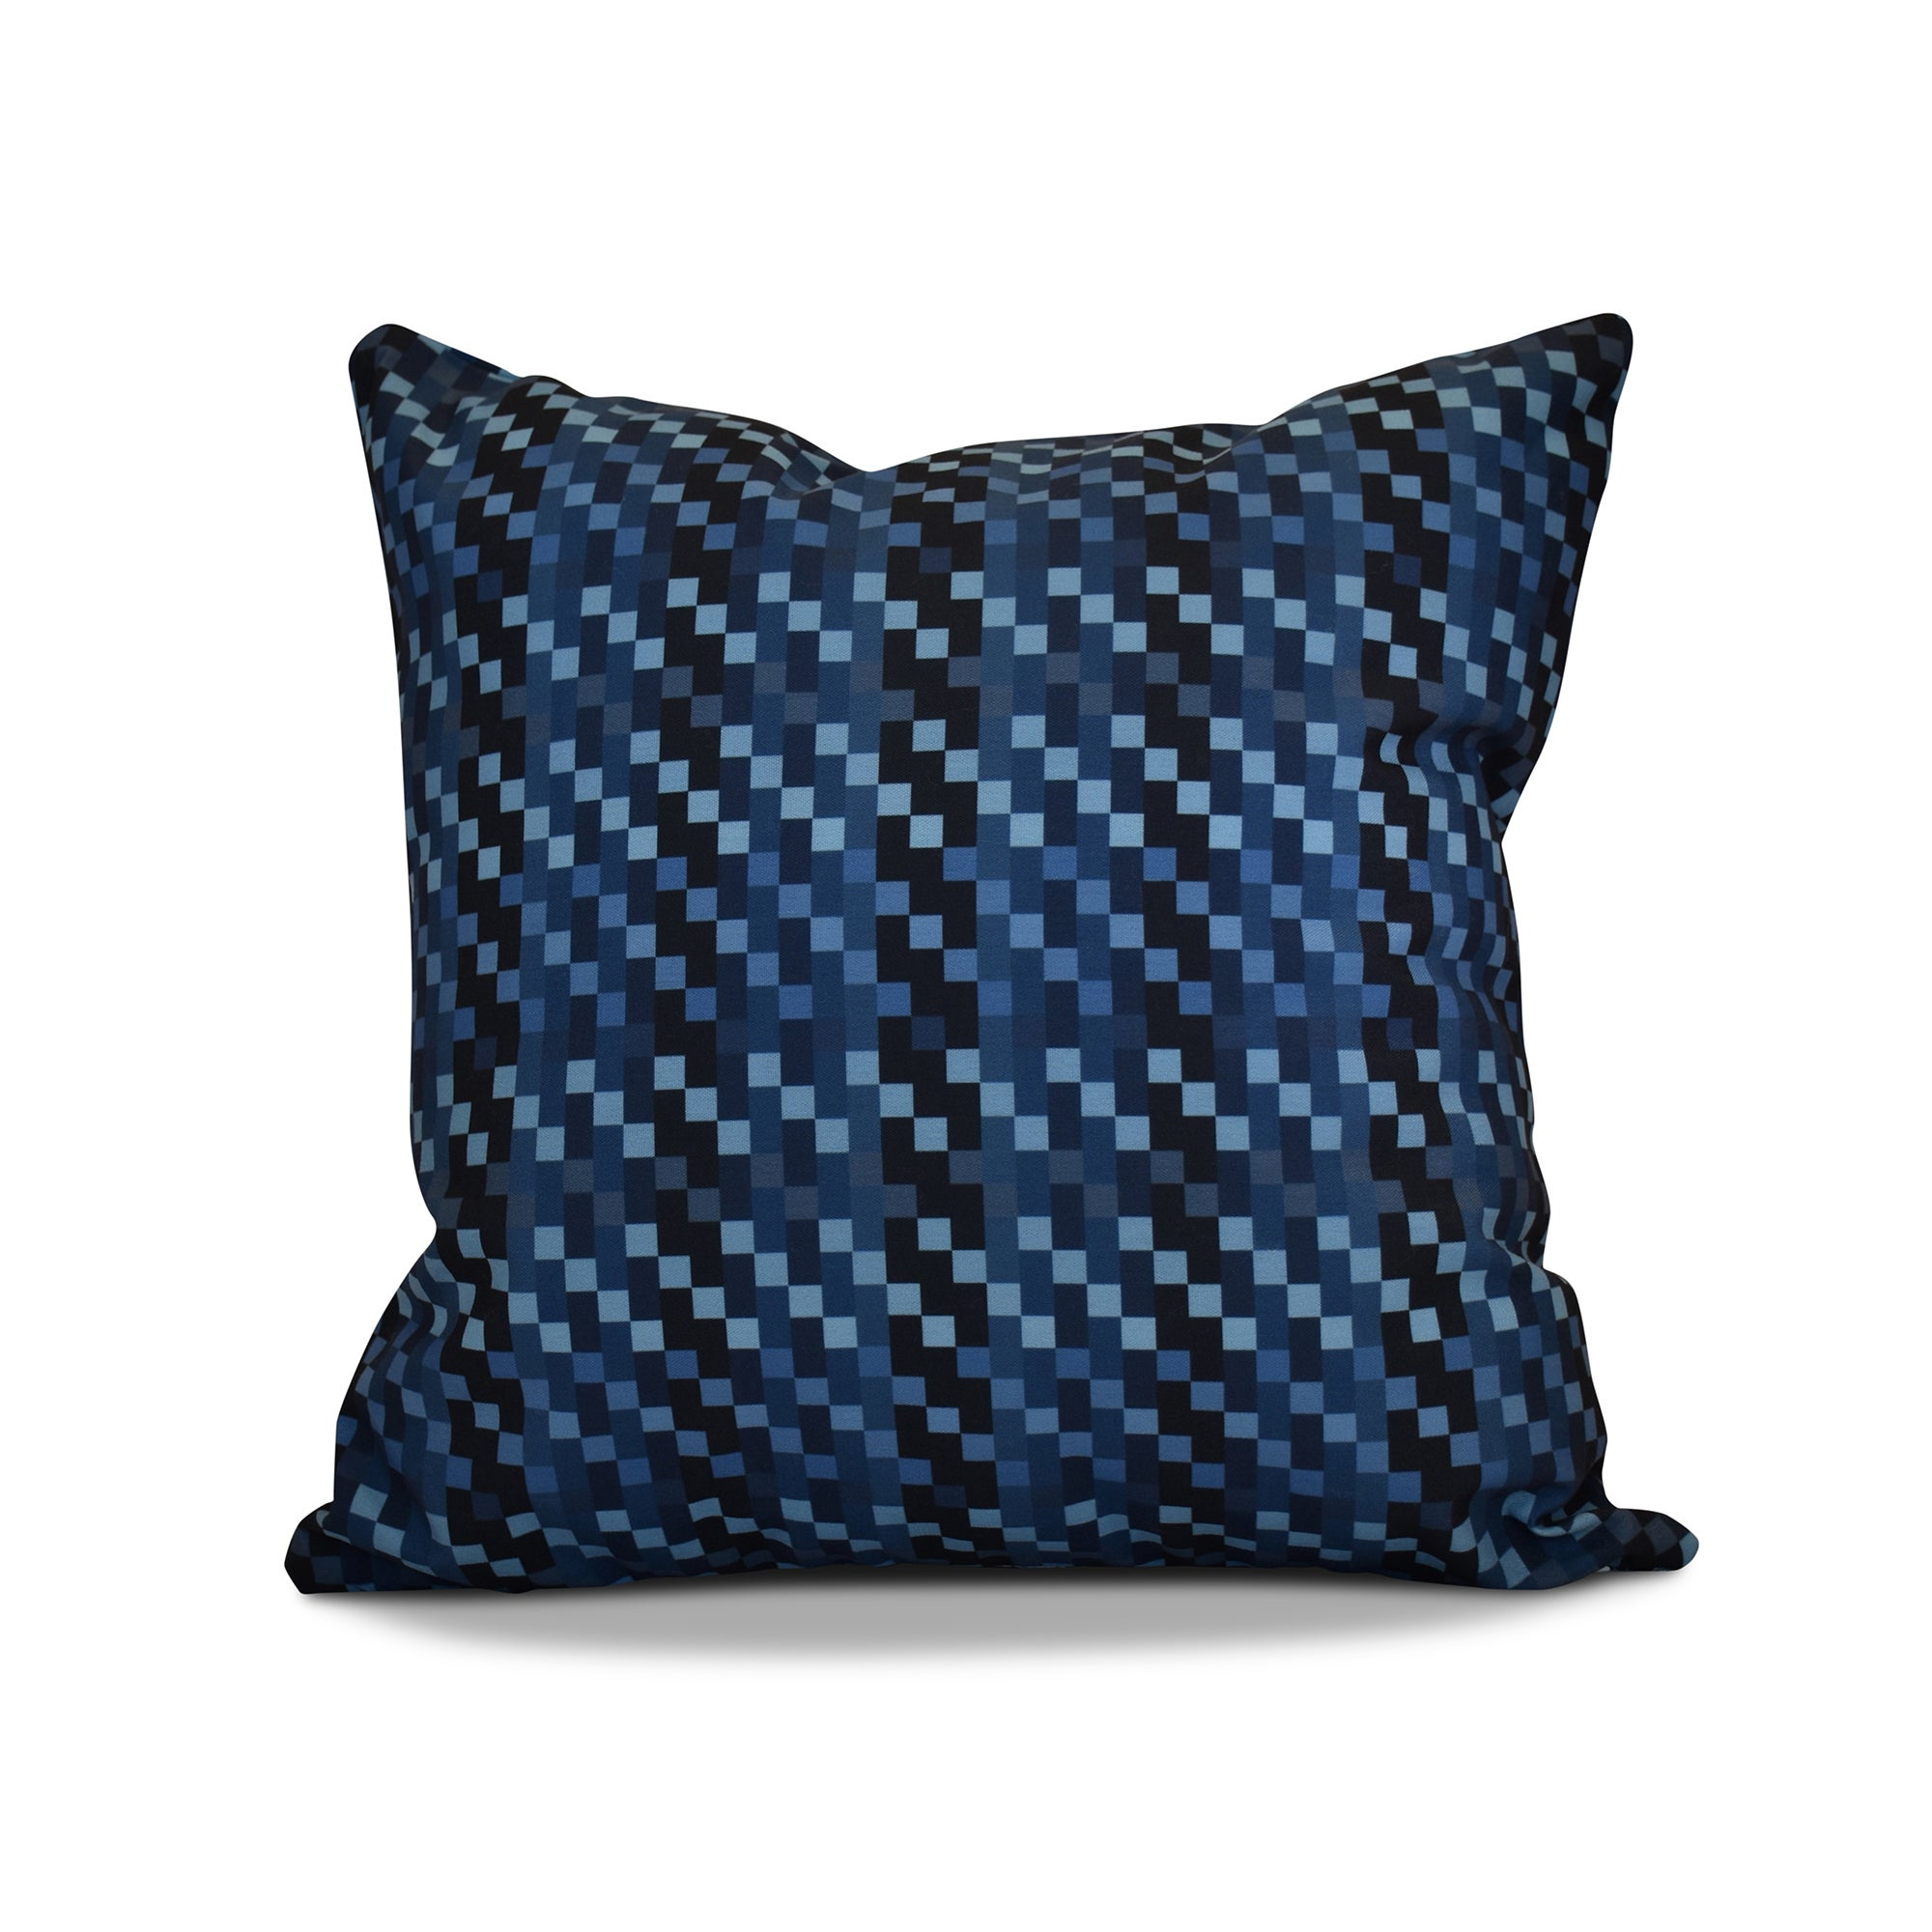 16 x 16-inch, Mad for Plaid, Geometric Print Outdoor Pillow (Purple)